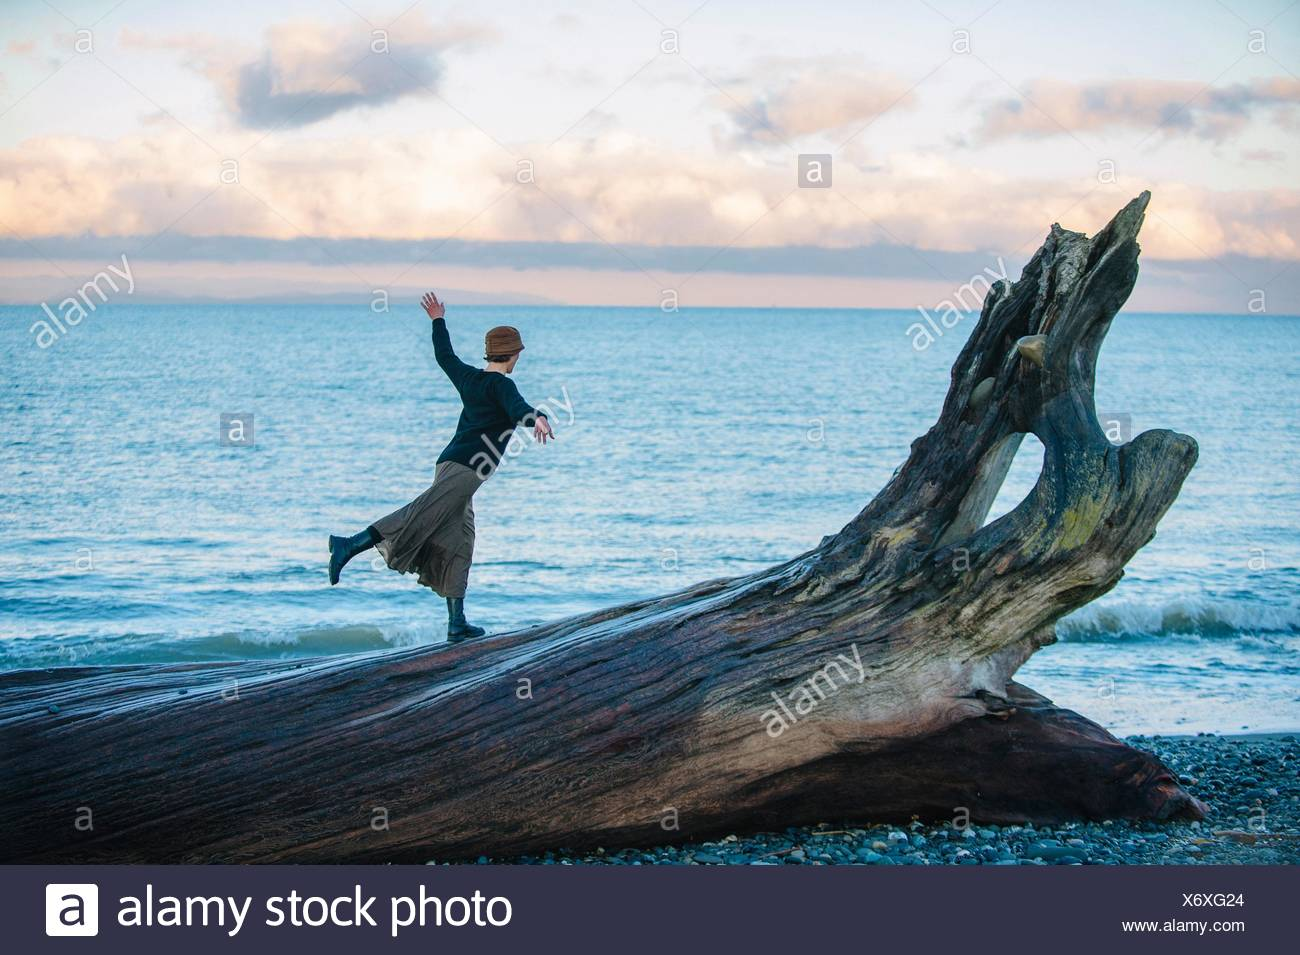 Woman standing on large driftwood tree trunk on beach Stock Photo